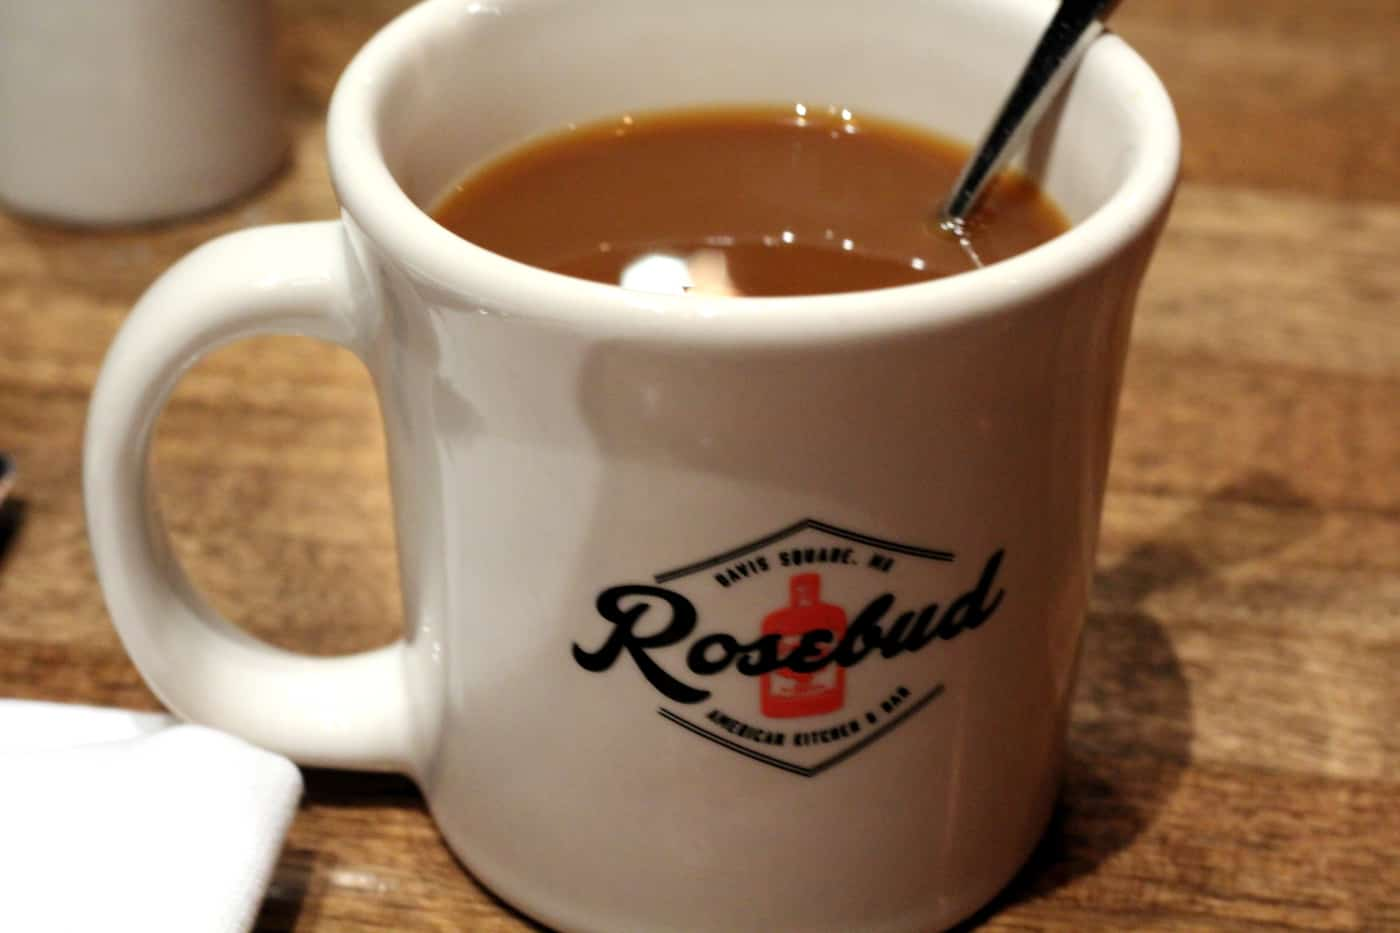 Restaurant Review: Rosebud American Kitchen & Bar (Brunch)